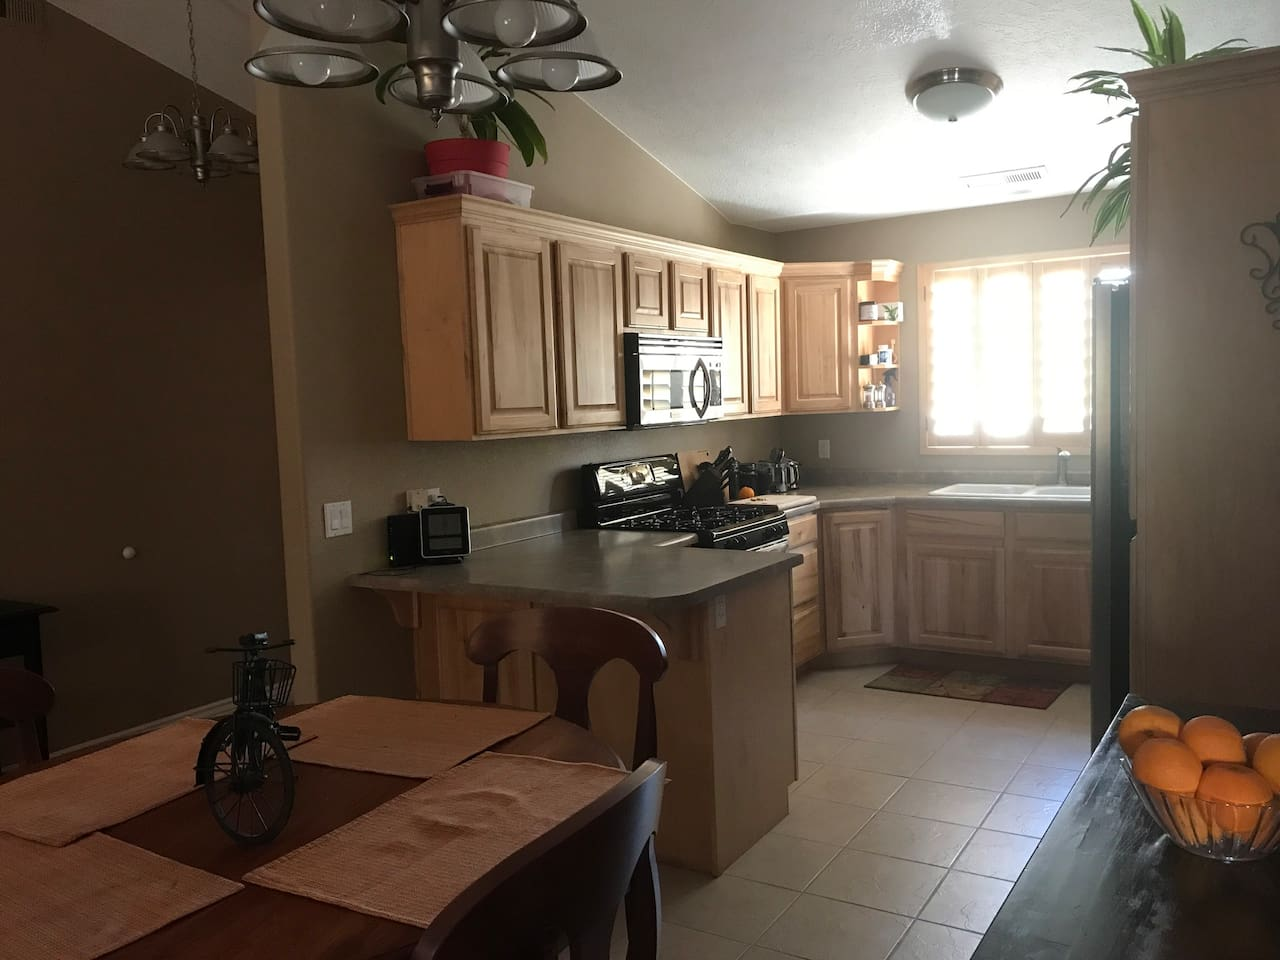 This is the Kitchen available for your use.